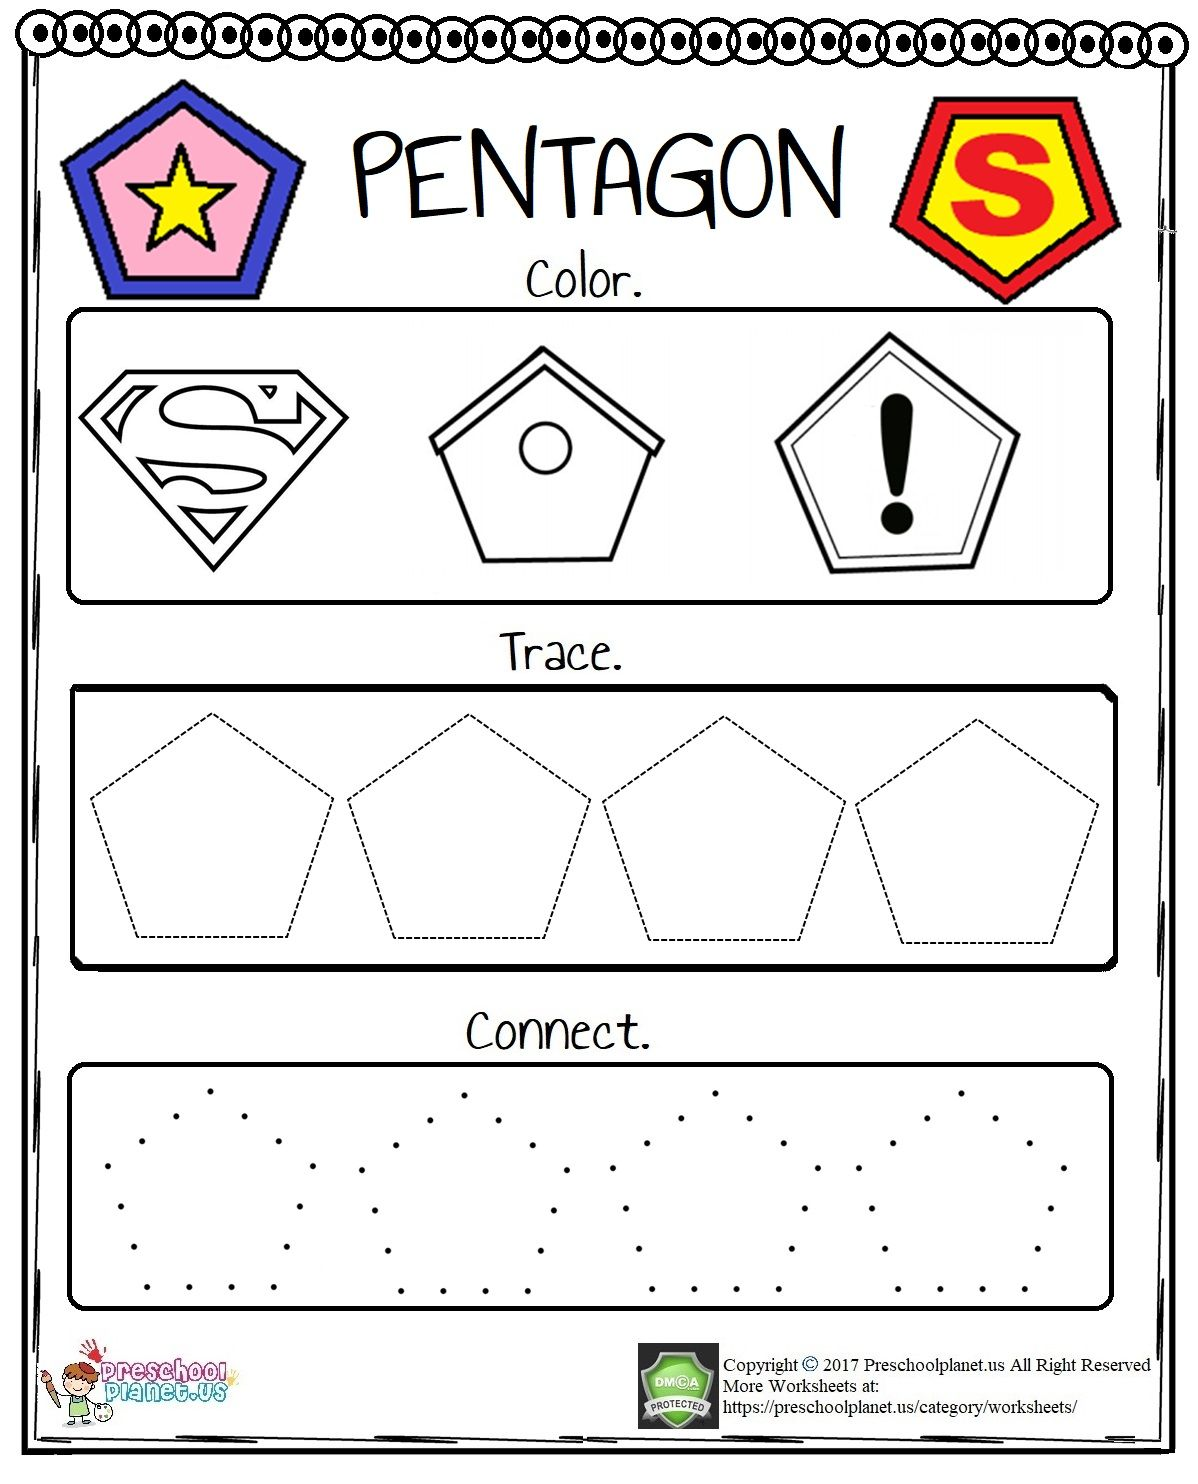 Pentagon Worksheet In